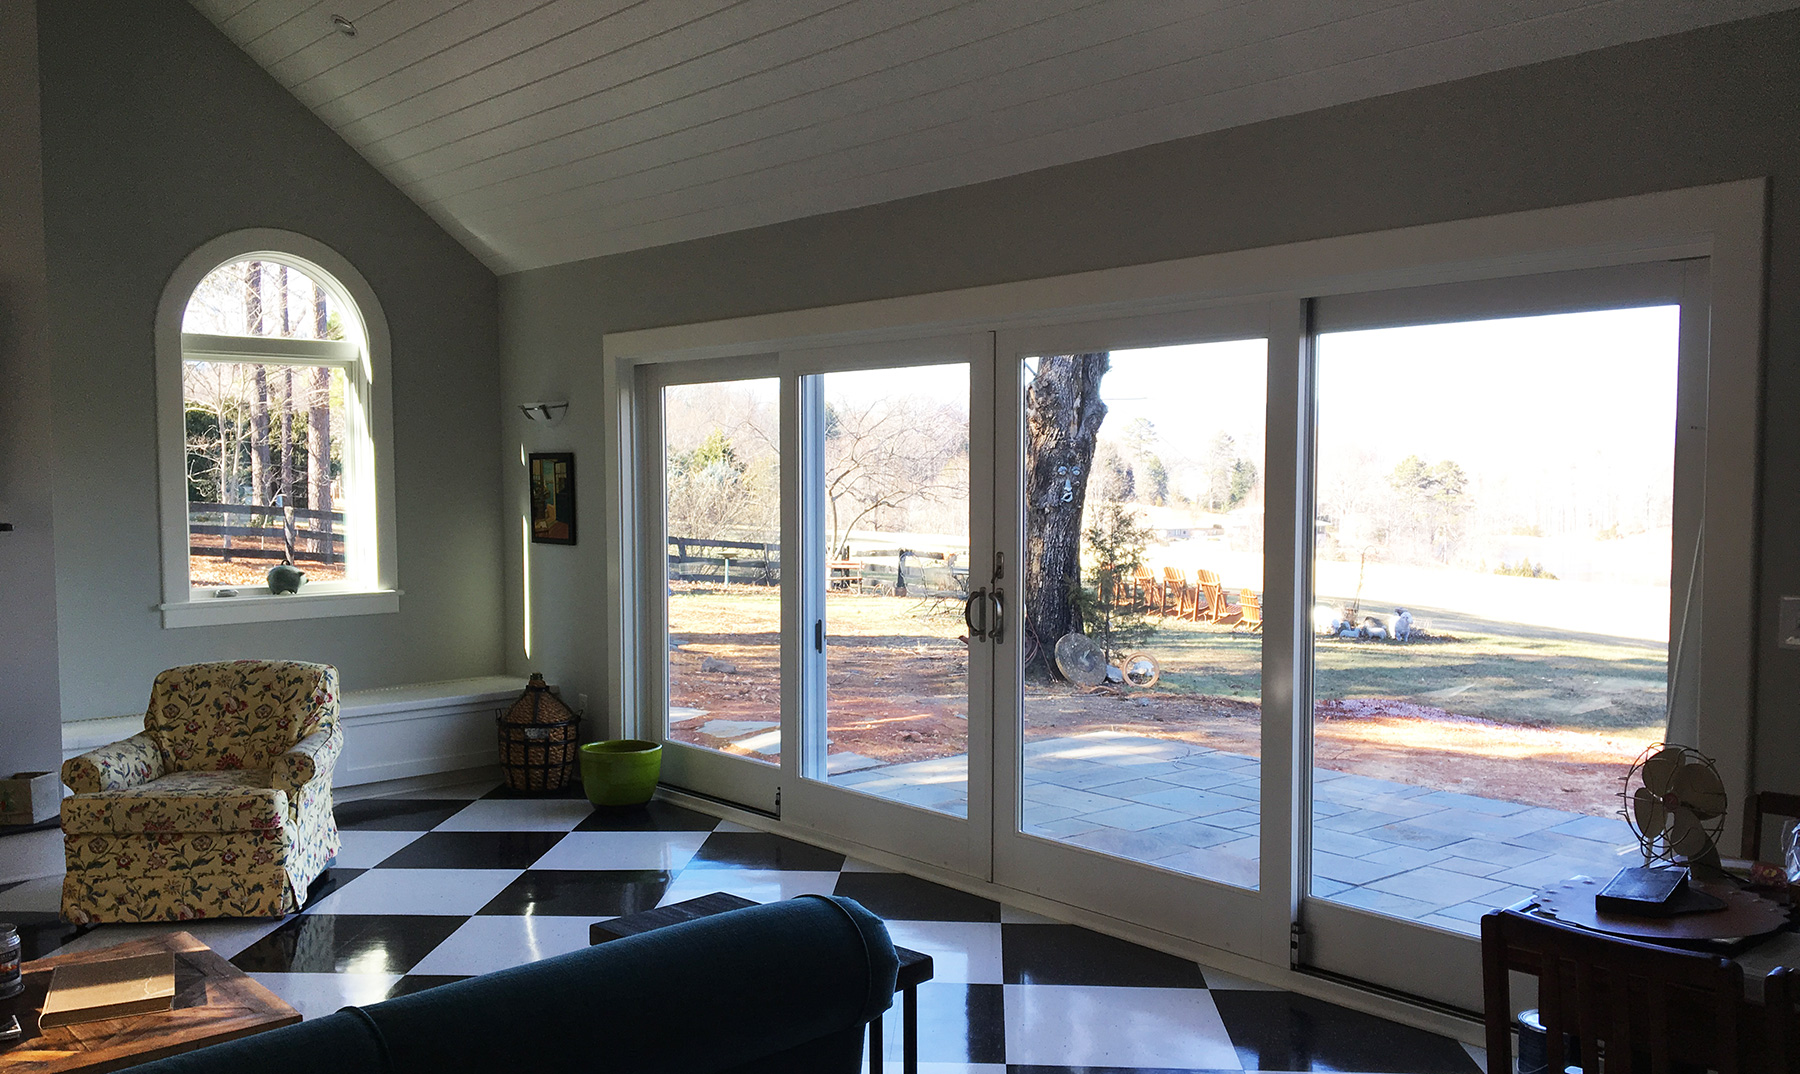 OVERSIZE SLIDING DOORS FOR VIEW AND ACCESS TO PATIO